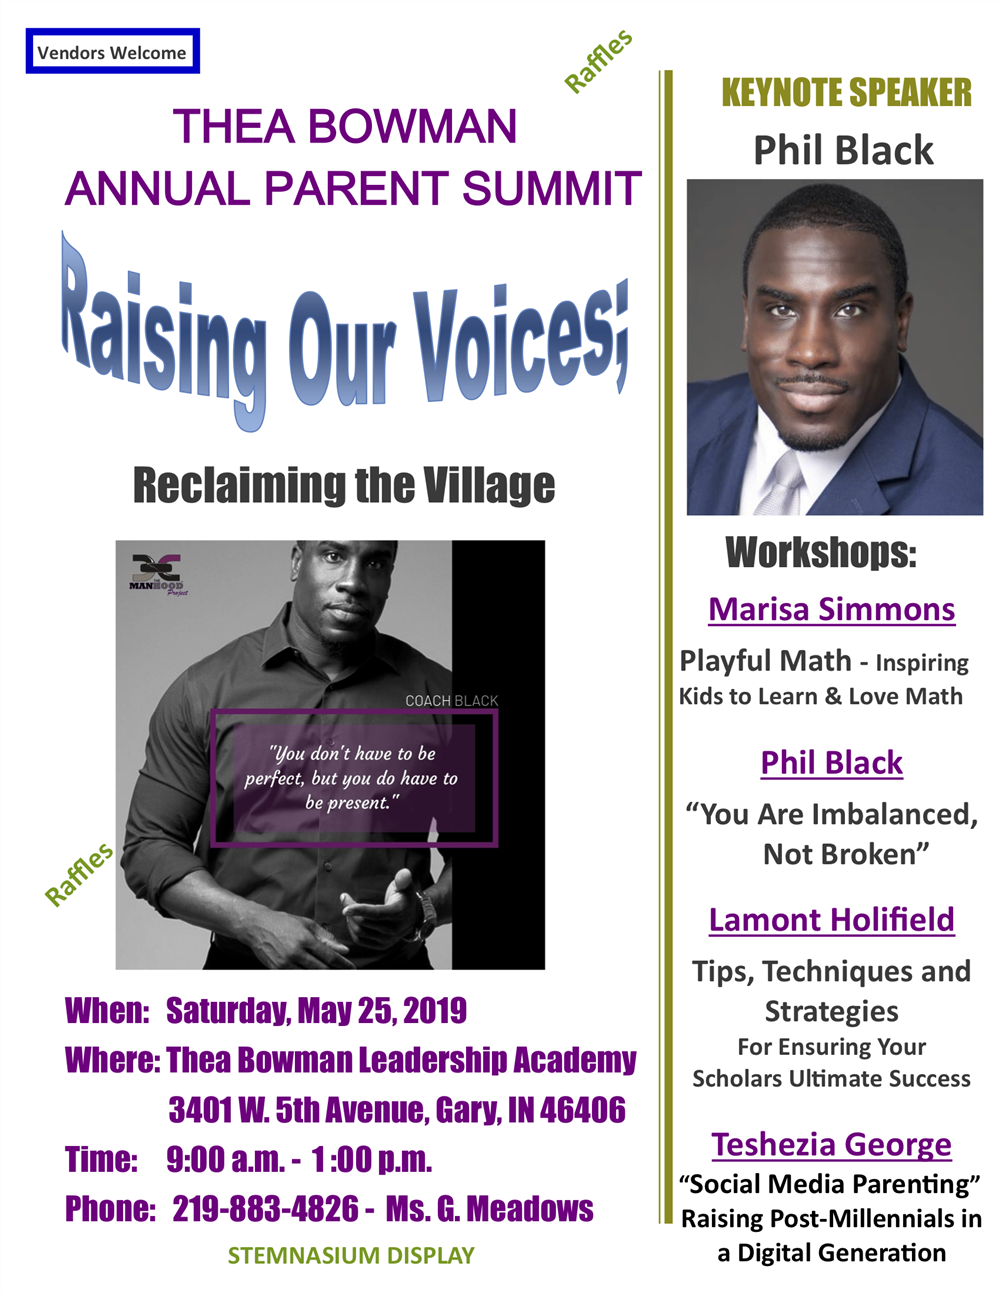 Thea Bowman Leadership Academy to host annual summit on Saturday, May 25